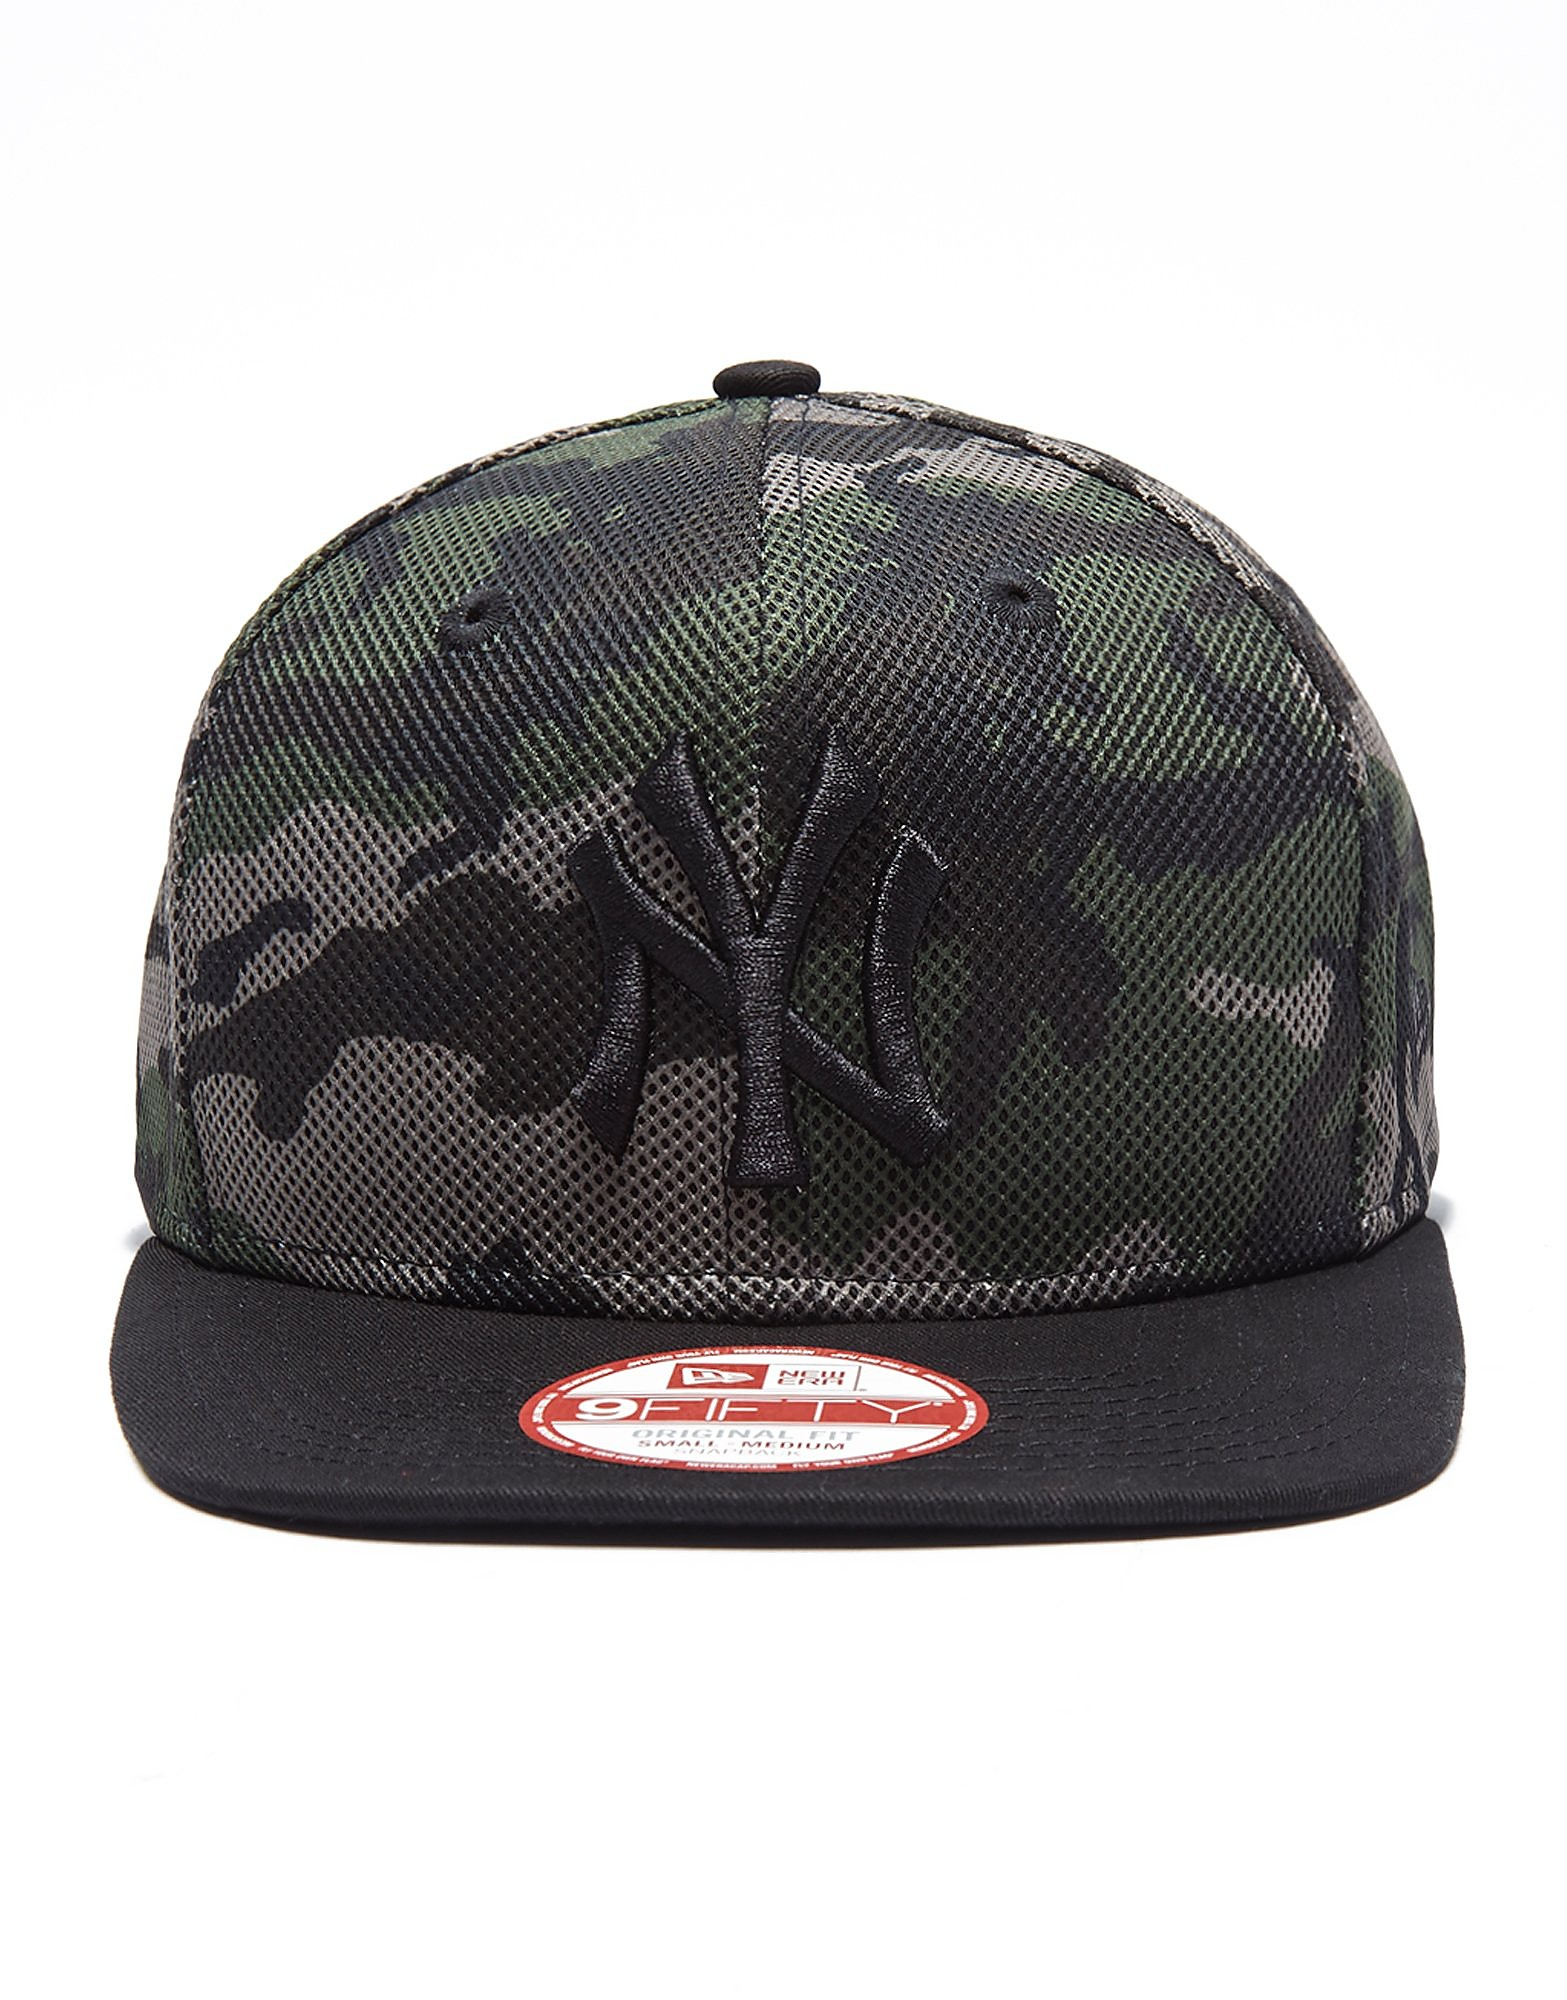 New Era MLB New York Yankees 9FIFTY Mesh Camo Cap